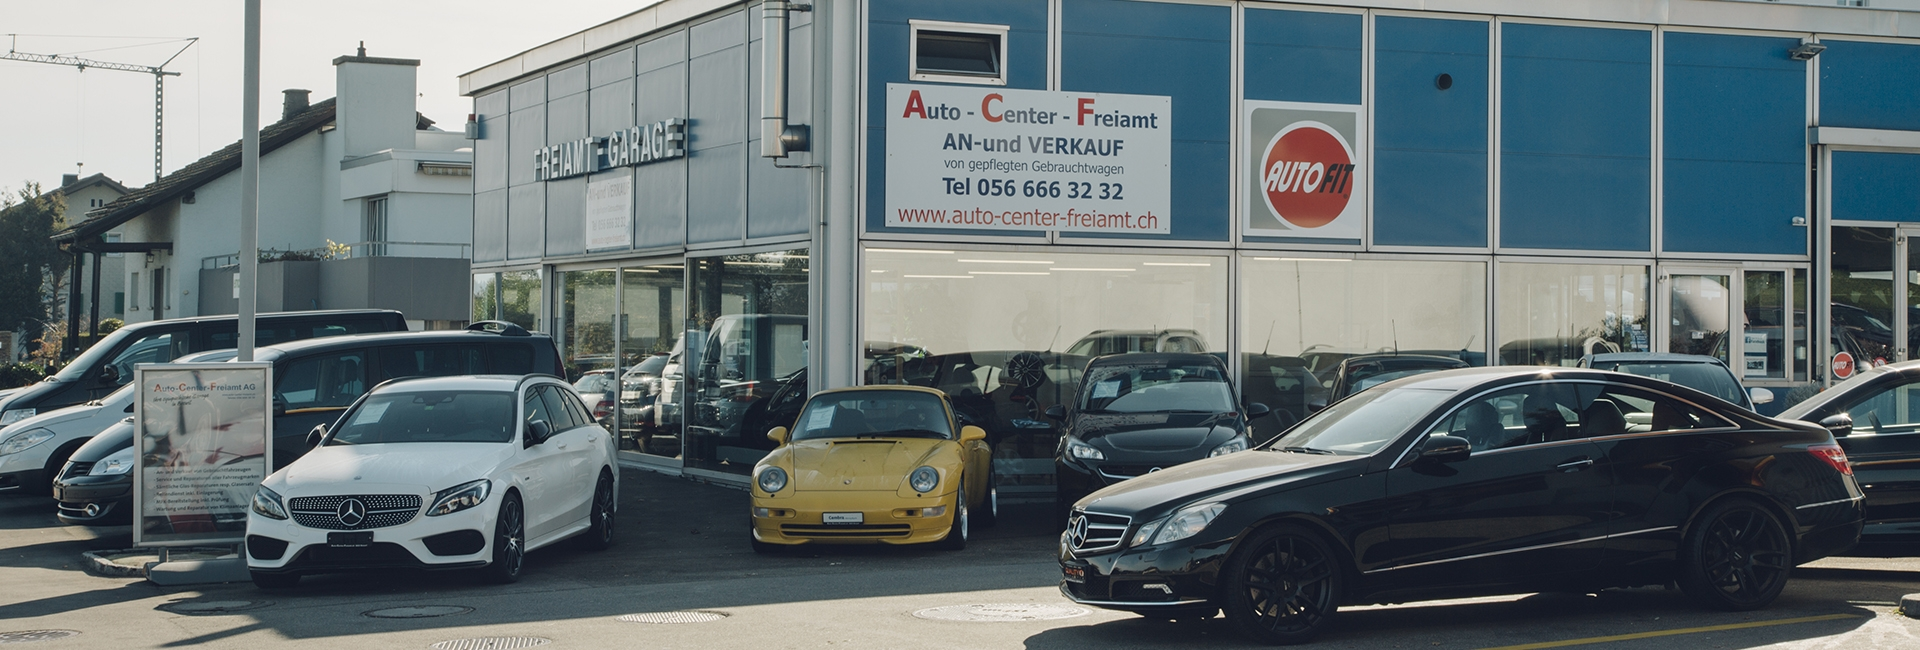 Slide Auto Center Freiamt AG 3